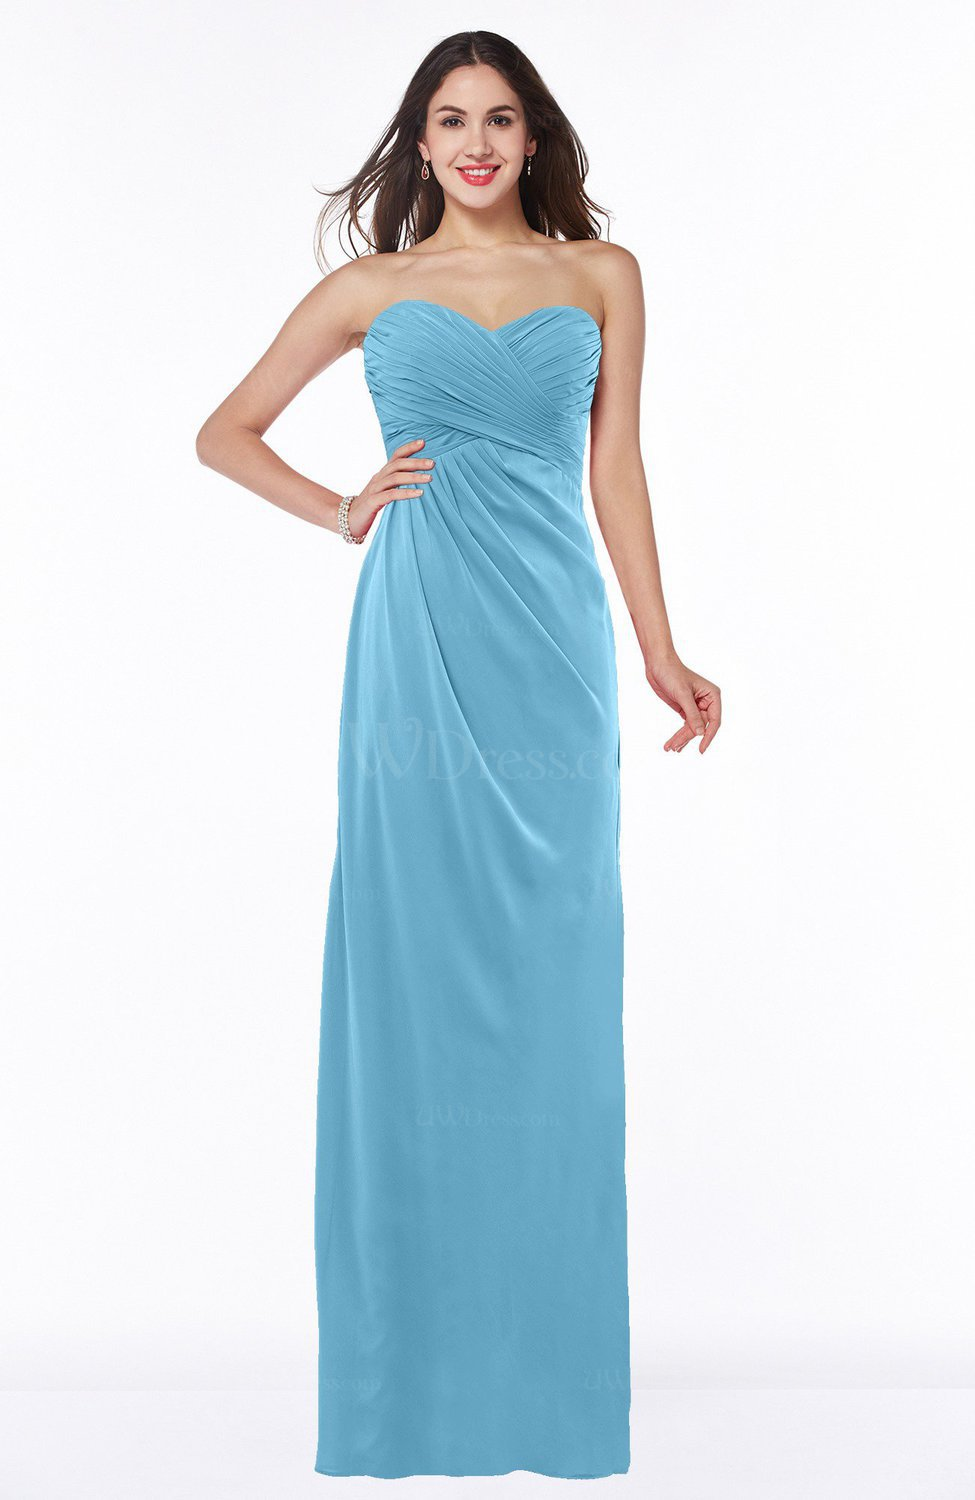 bbc7f3df84d0c Light Blue Sexy Sheath Strapless Half Backless Floor Length Pleated Plus  Size Bridesmaid Dresses (Style D94540)